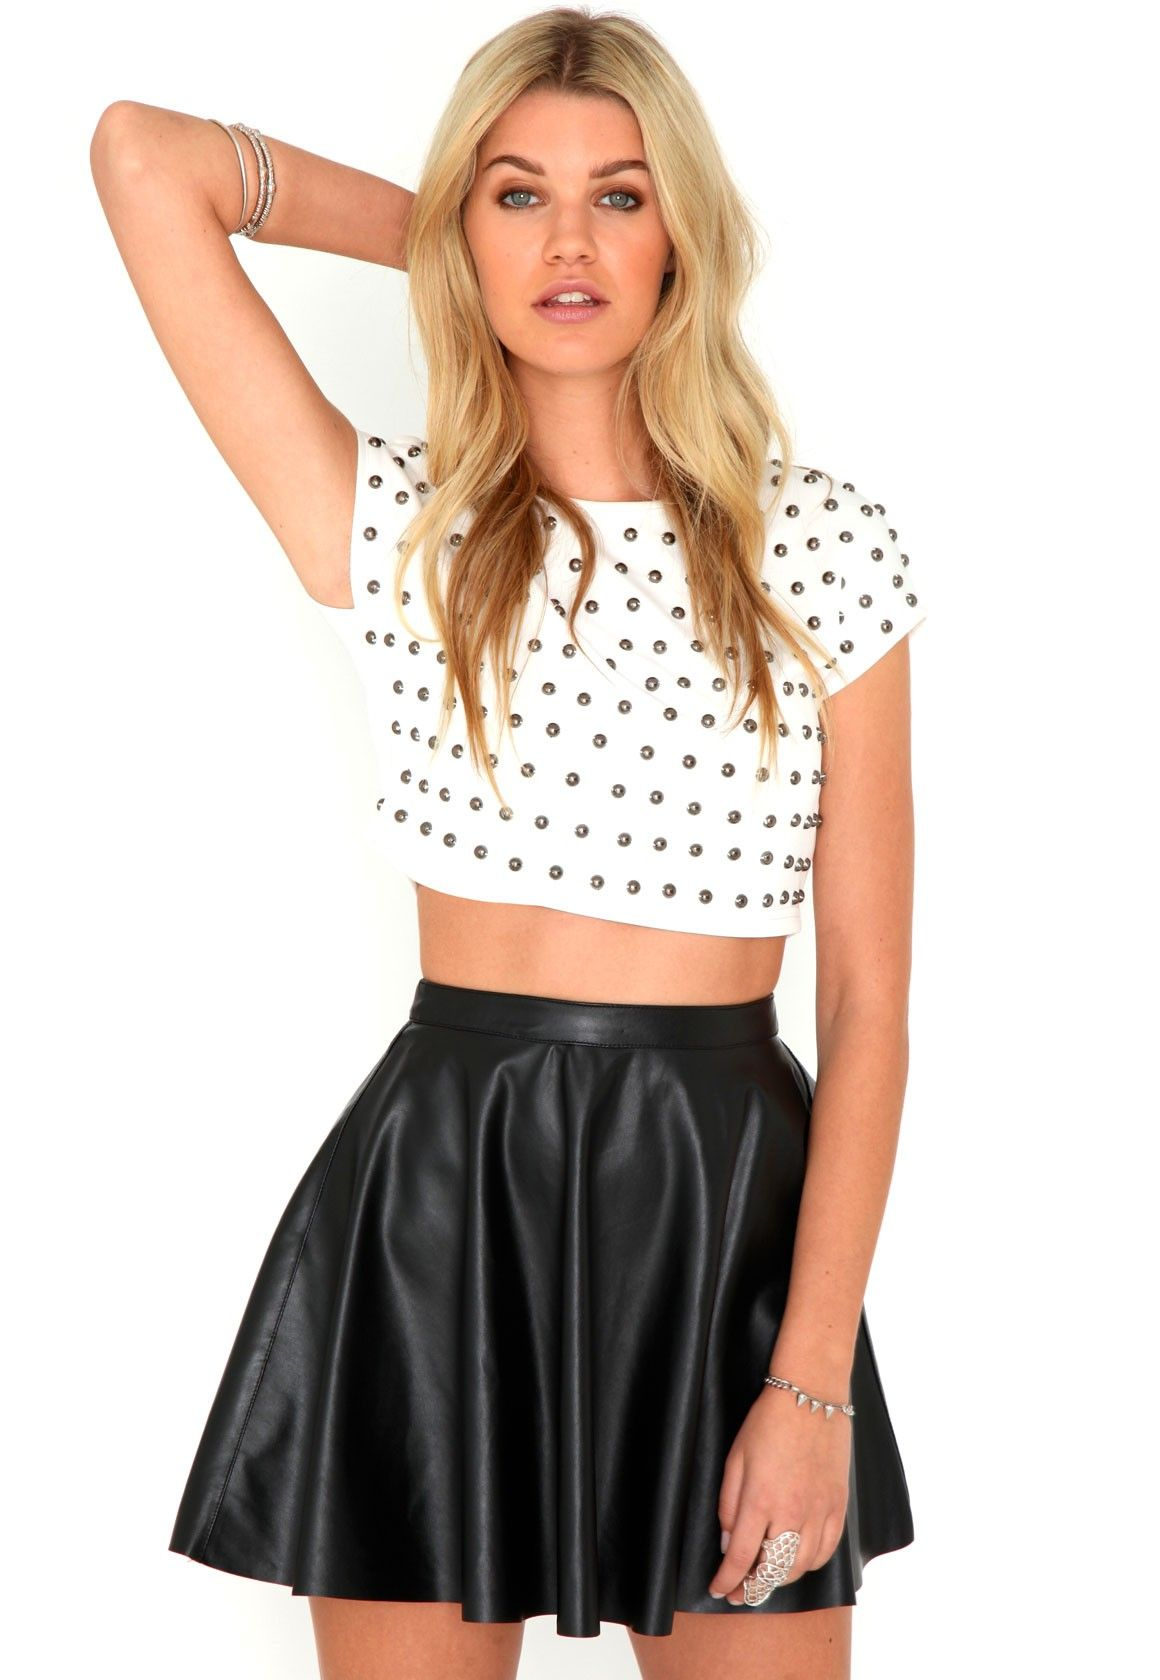 how to wear baggy crop tops tumblr - Google Search | Random ...